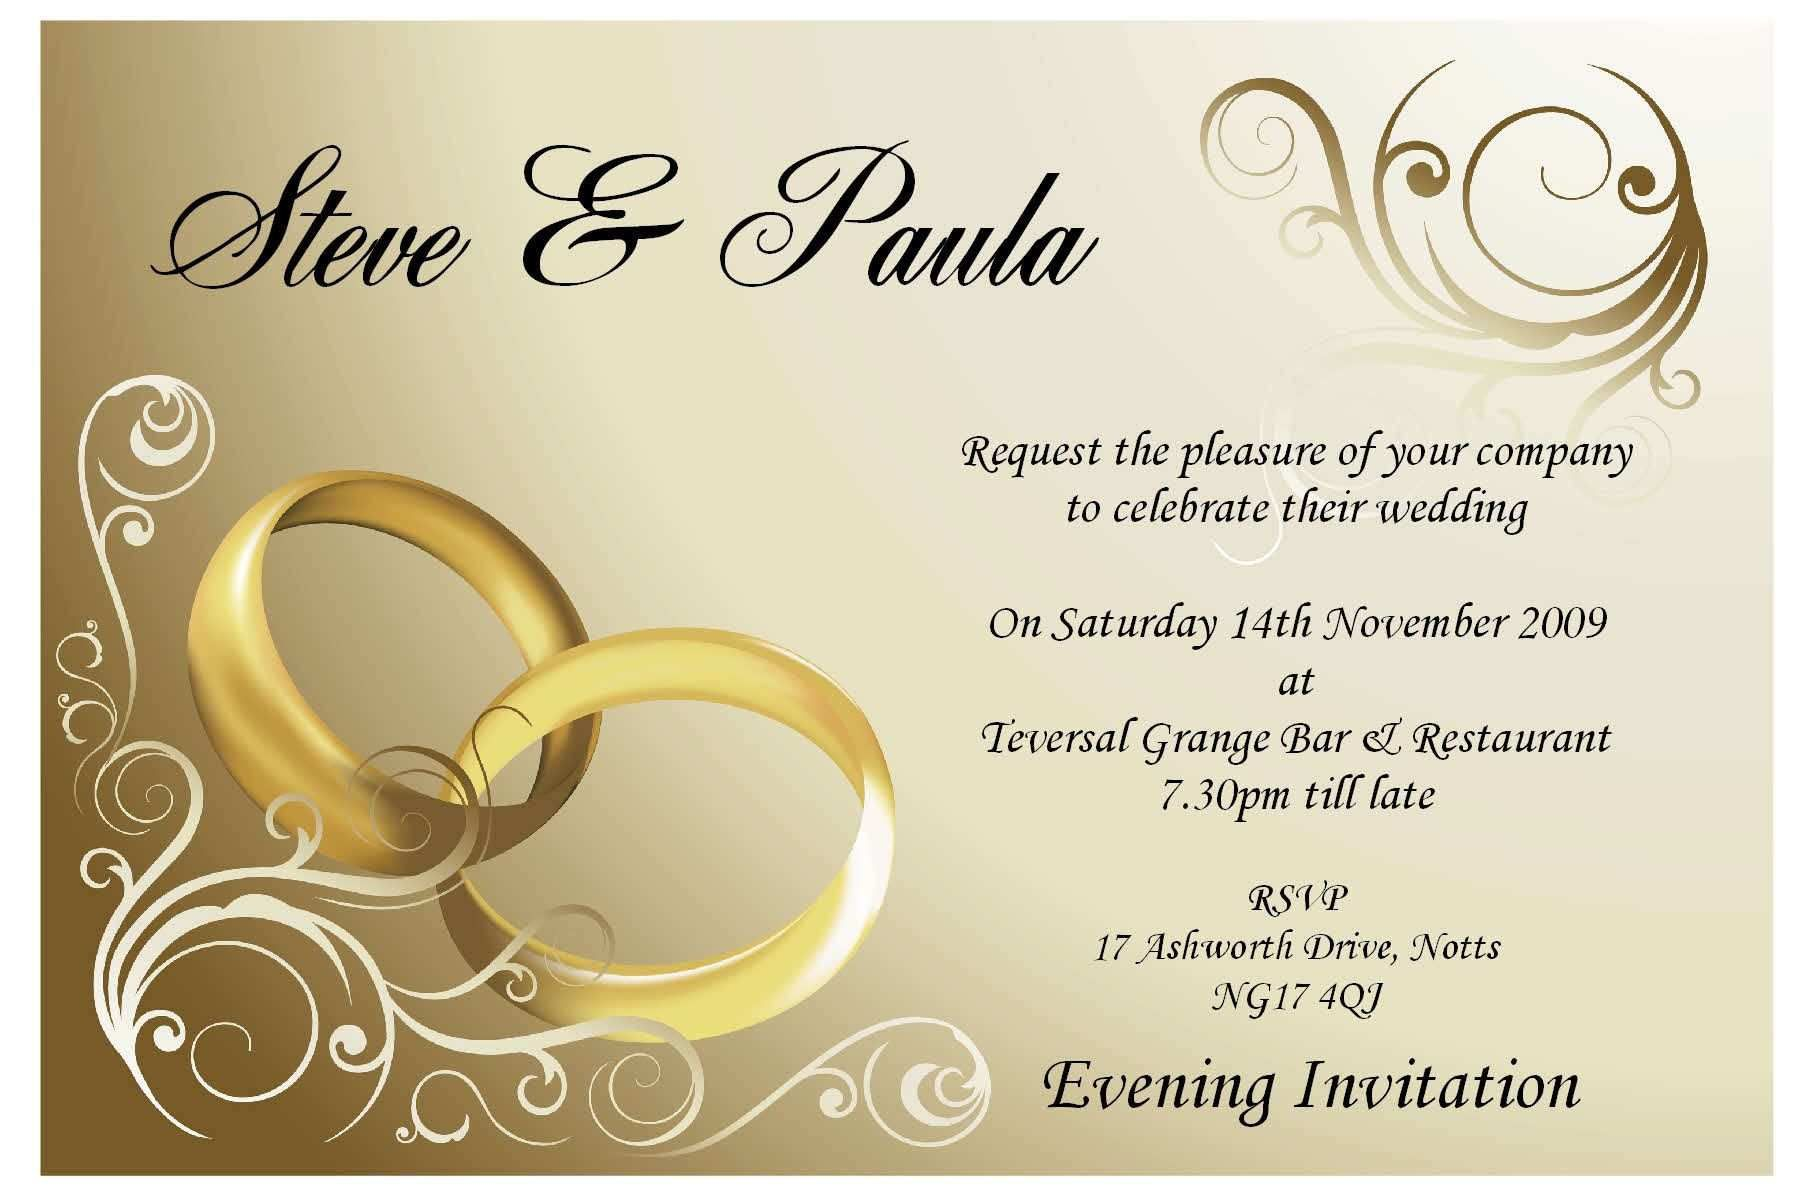 003 Fantastic Free Online Indian Wedding Invitation Card Template Highest Clarity  TemplatesFull